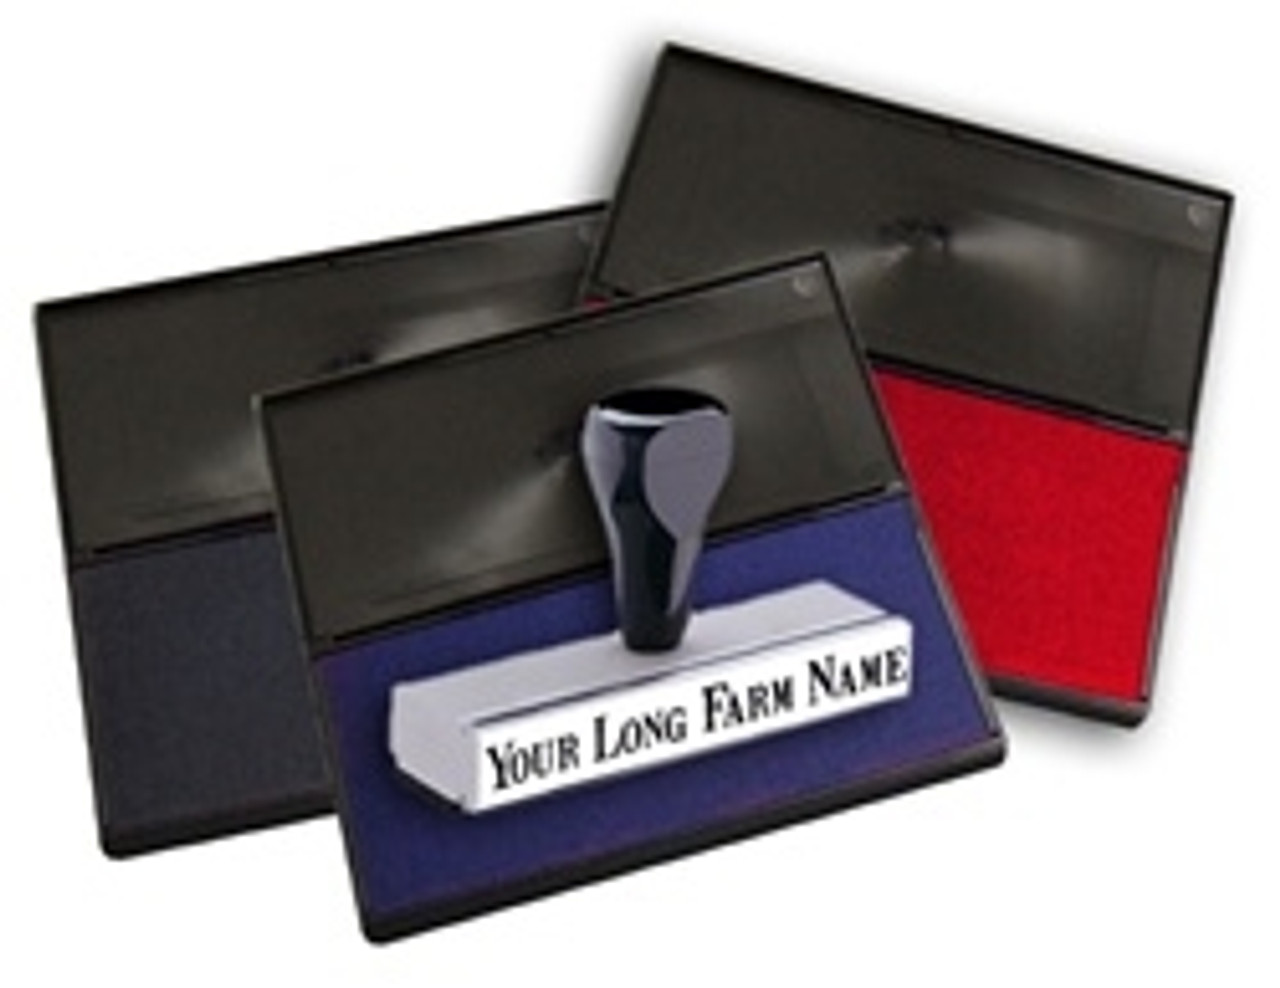 Large red and blue Ink Pads and wooden stamp knob